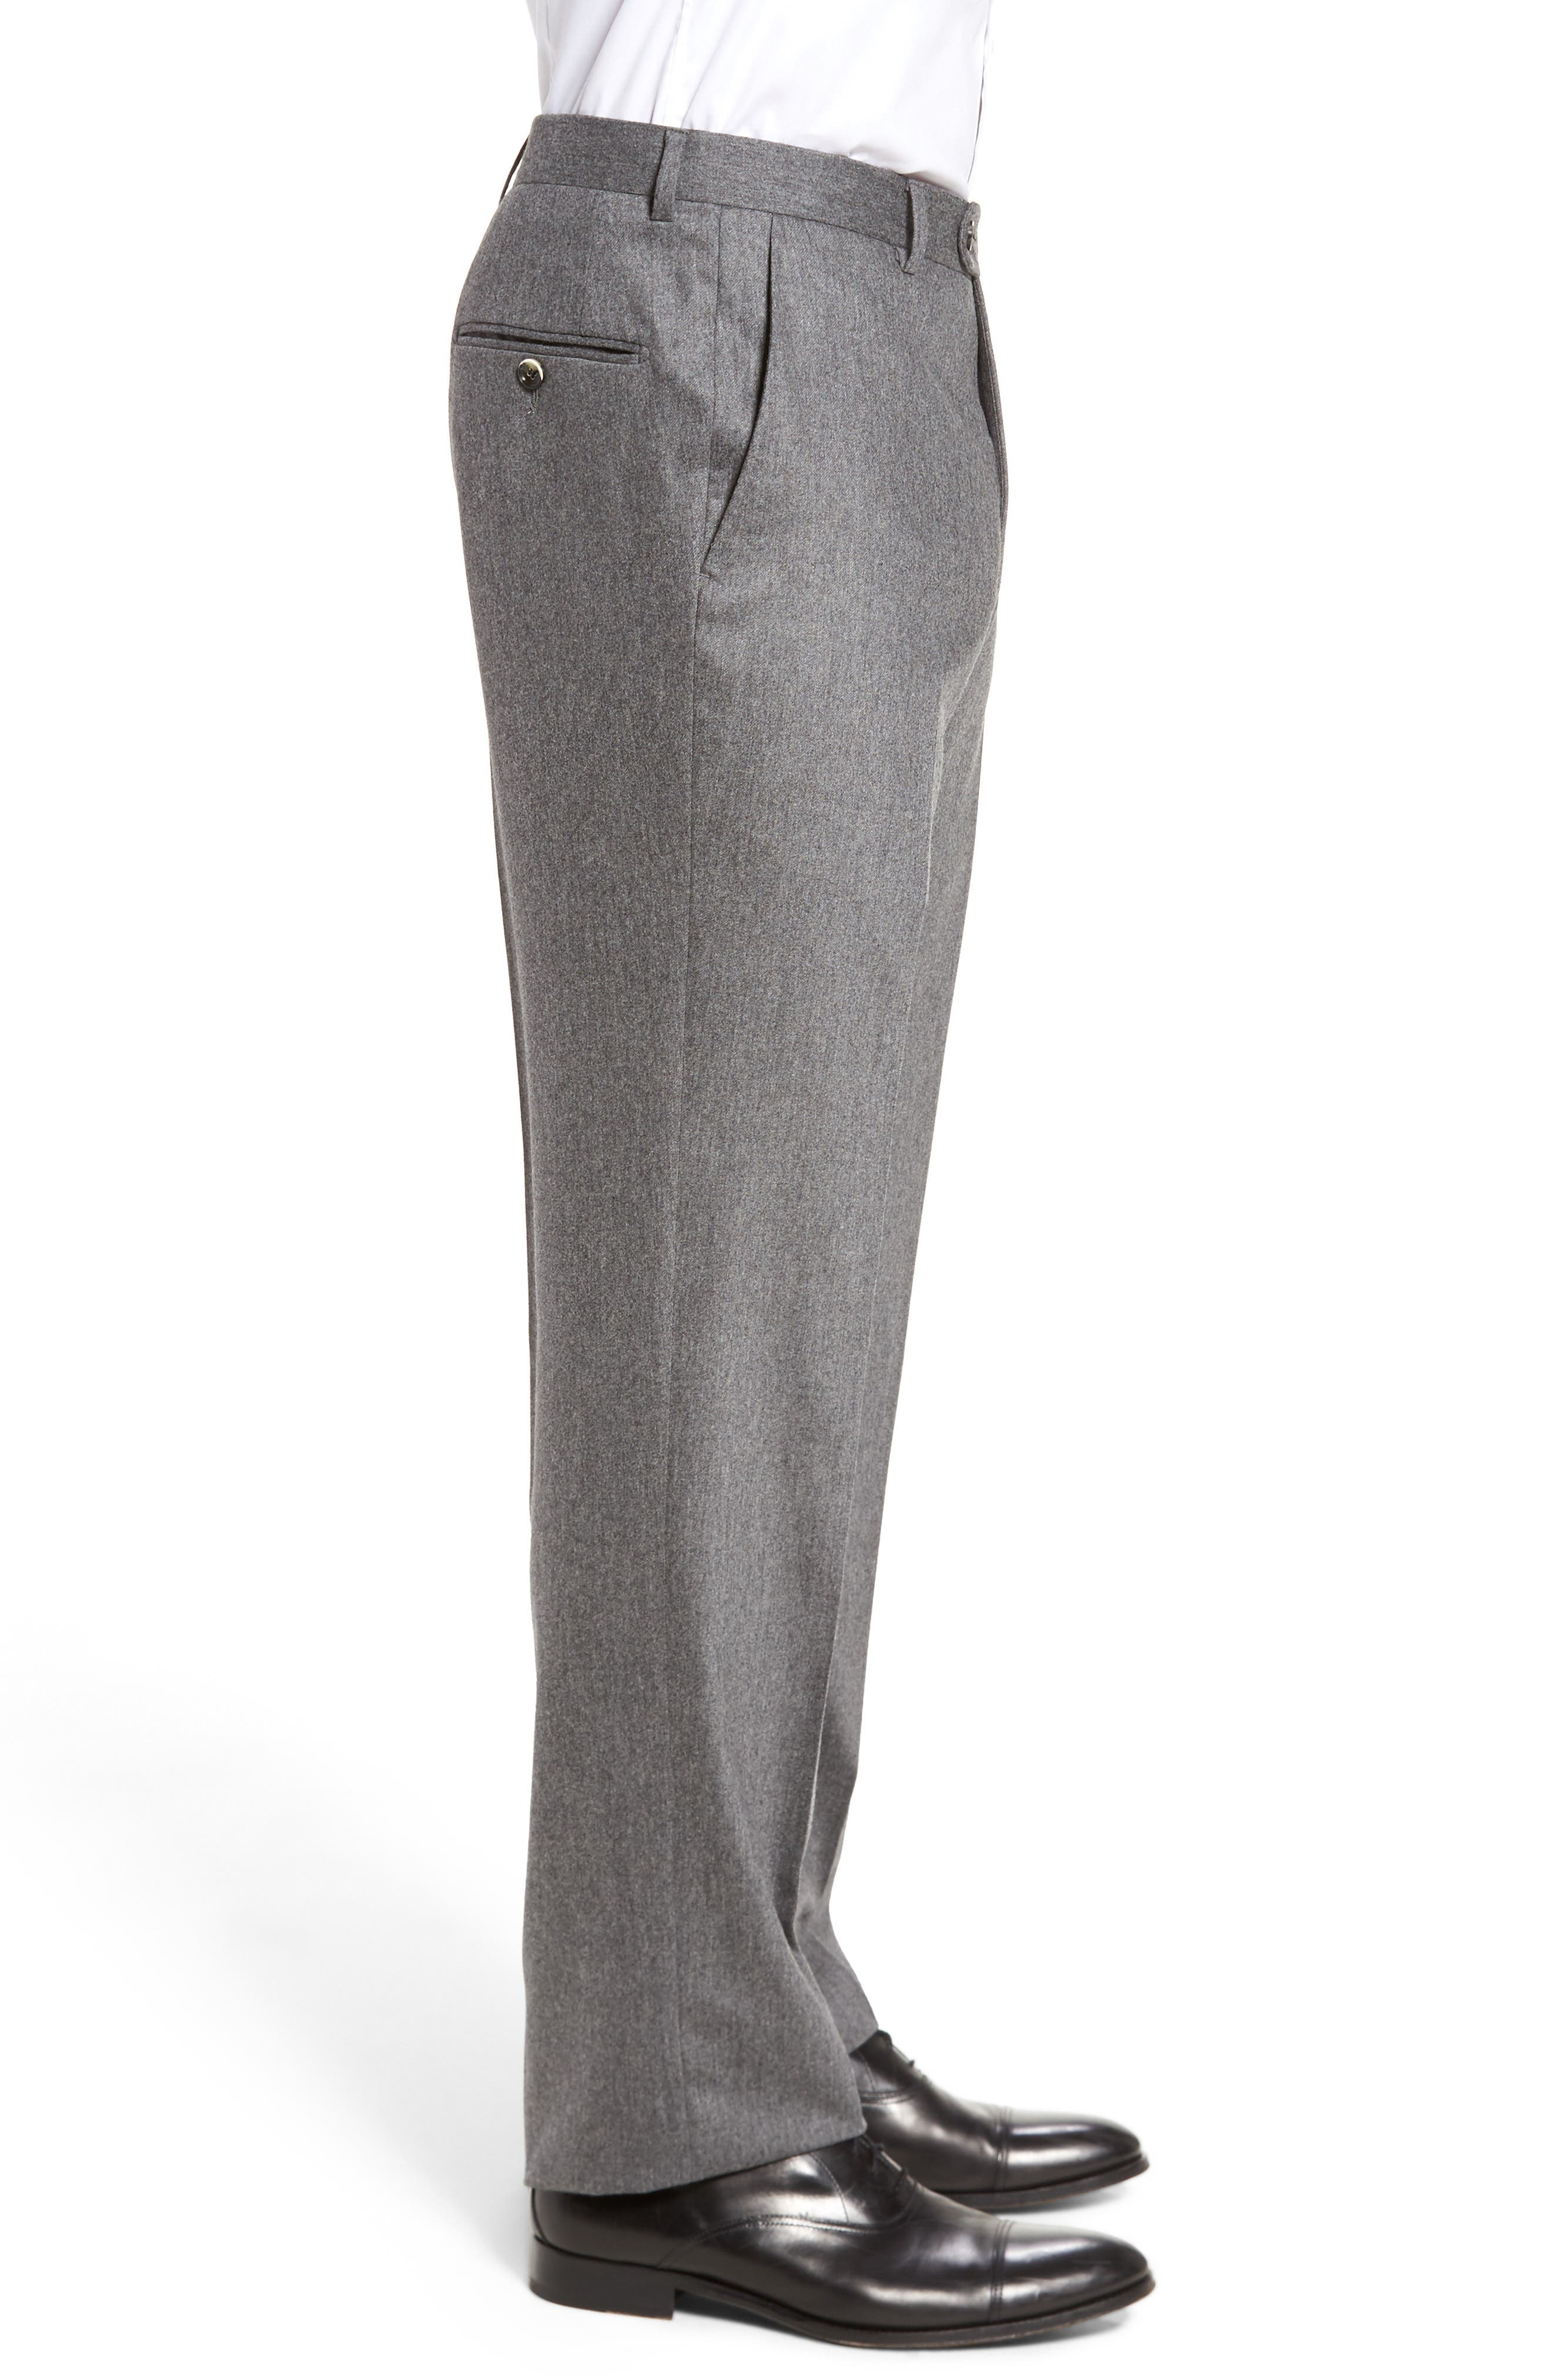 Classic B Fit Flat Front Solid Wool Blend Trousers,                             Alternate thumbnail 4, color,                             030